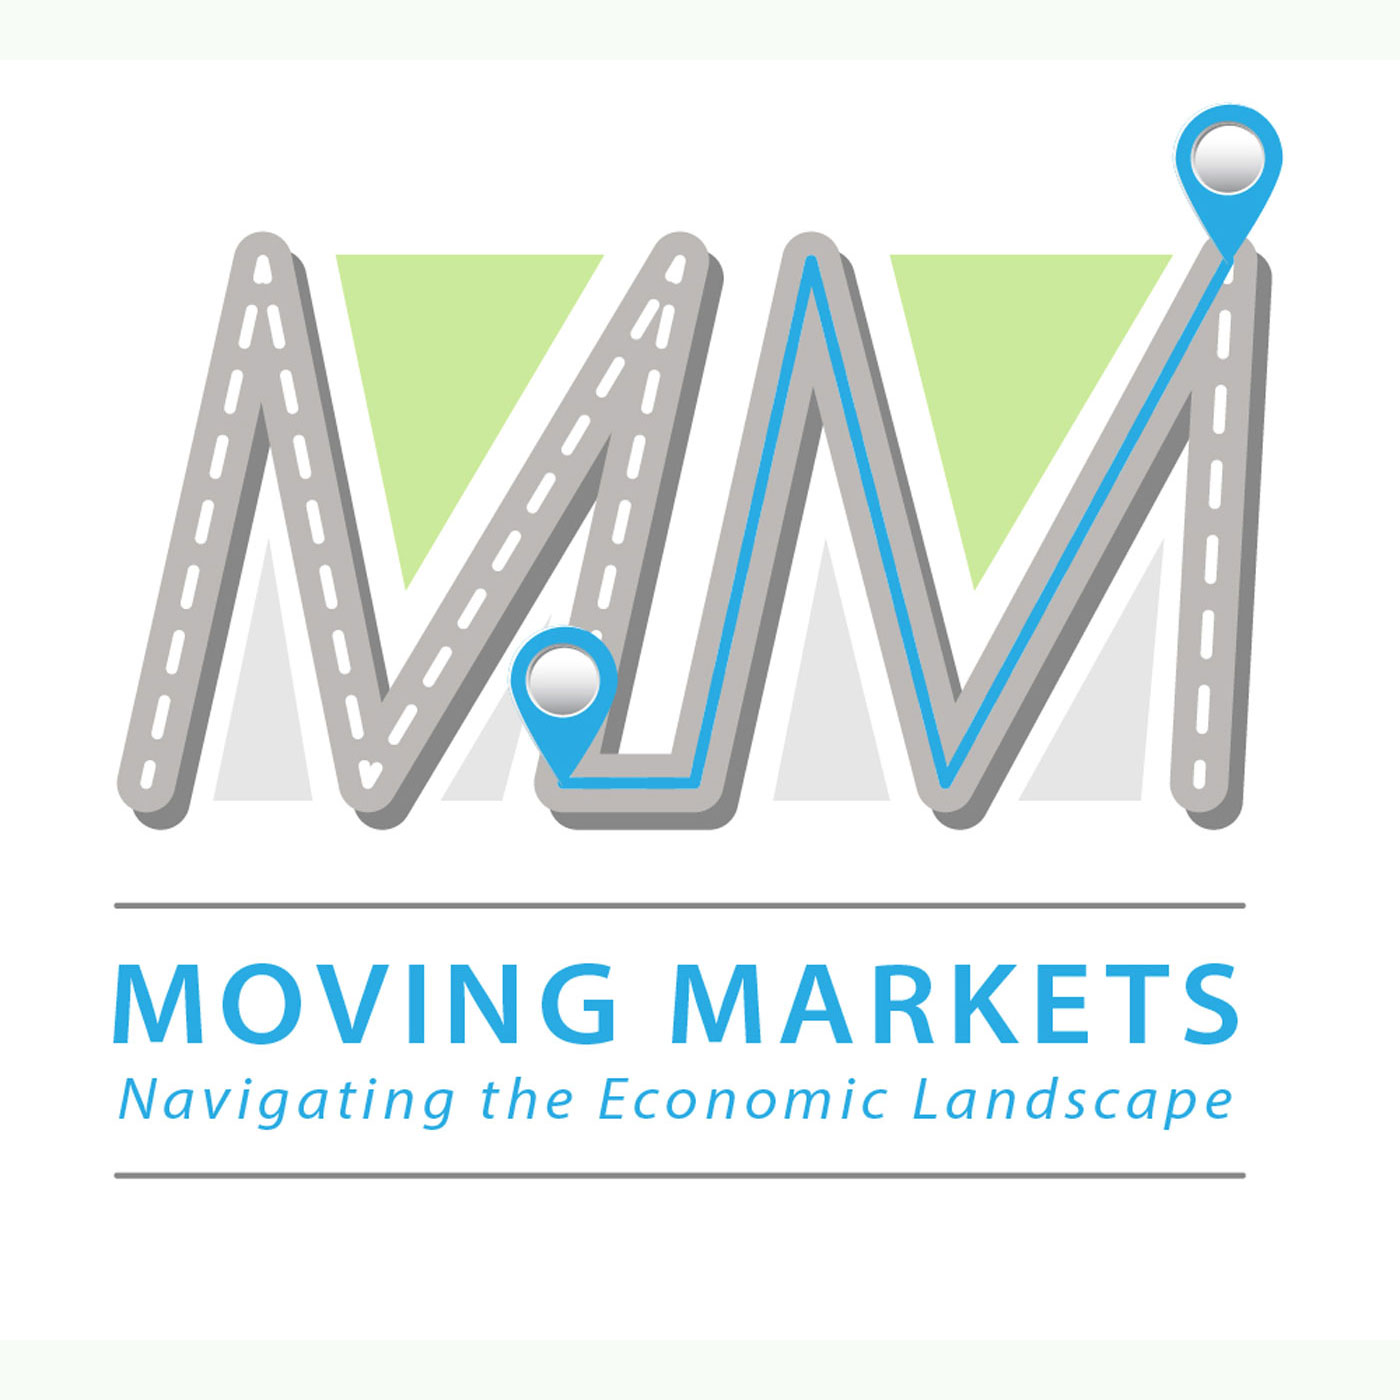 Ep. 4 Thoughts on Continued Market Volatility